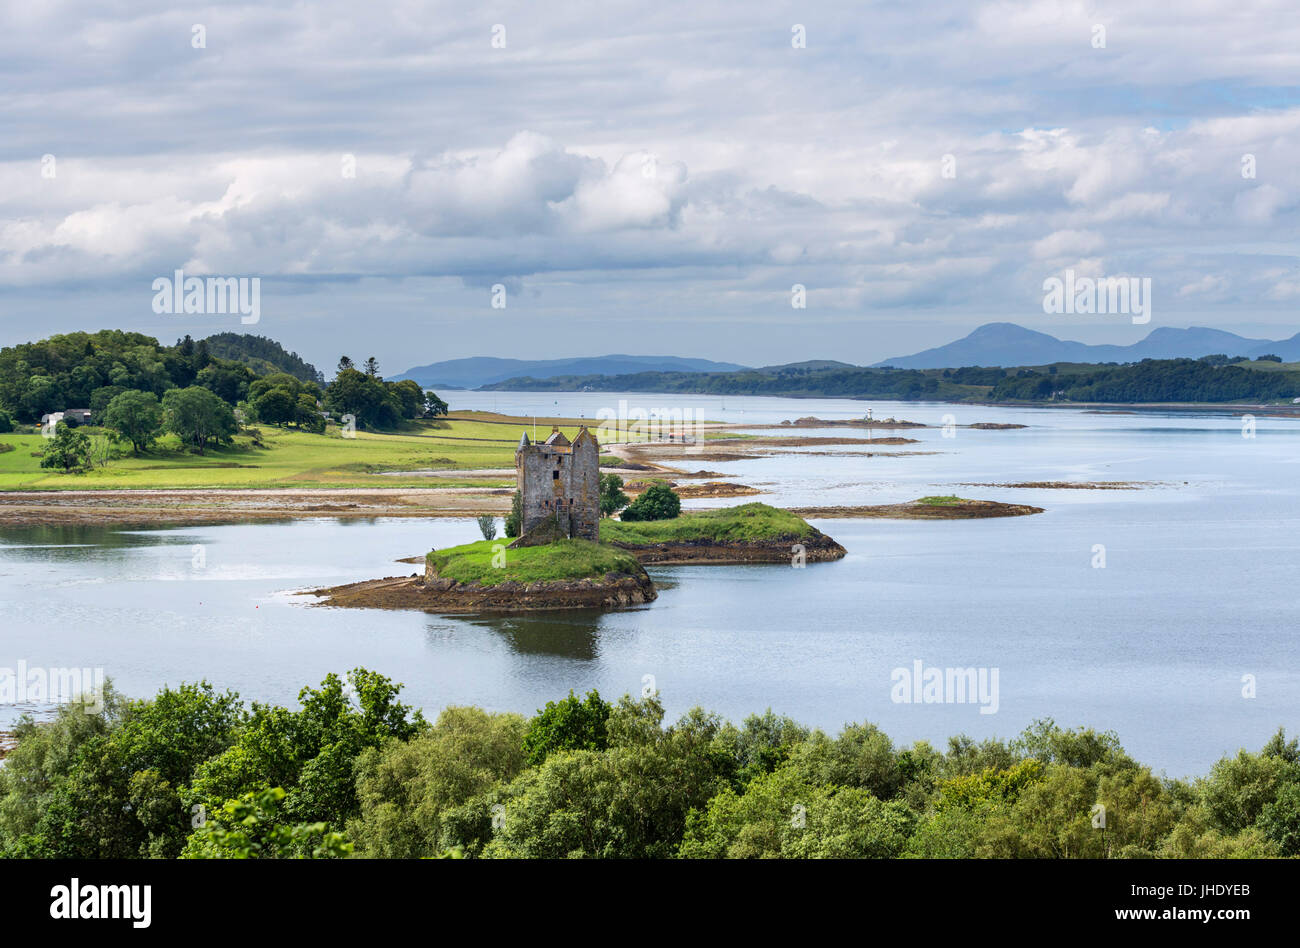 Castle Stalker, Loch Laich, Port Appin, Argyll and Bute, Scotland, UK. Schottische Landschaft / Landschaften Stockbild